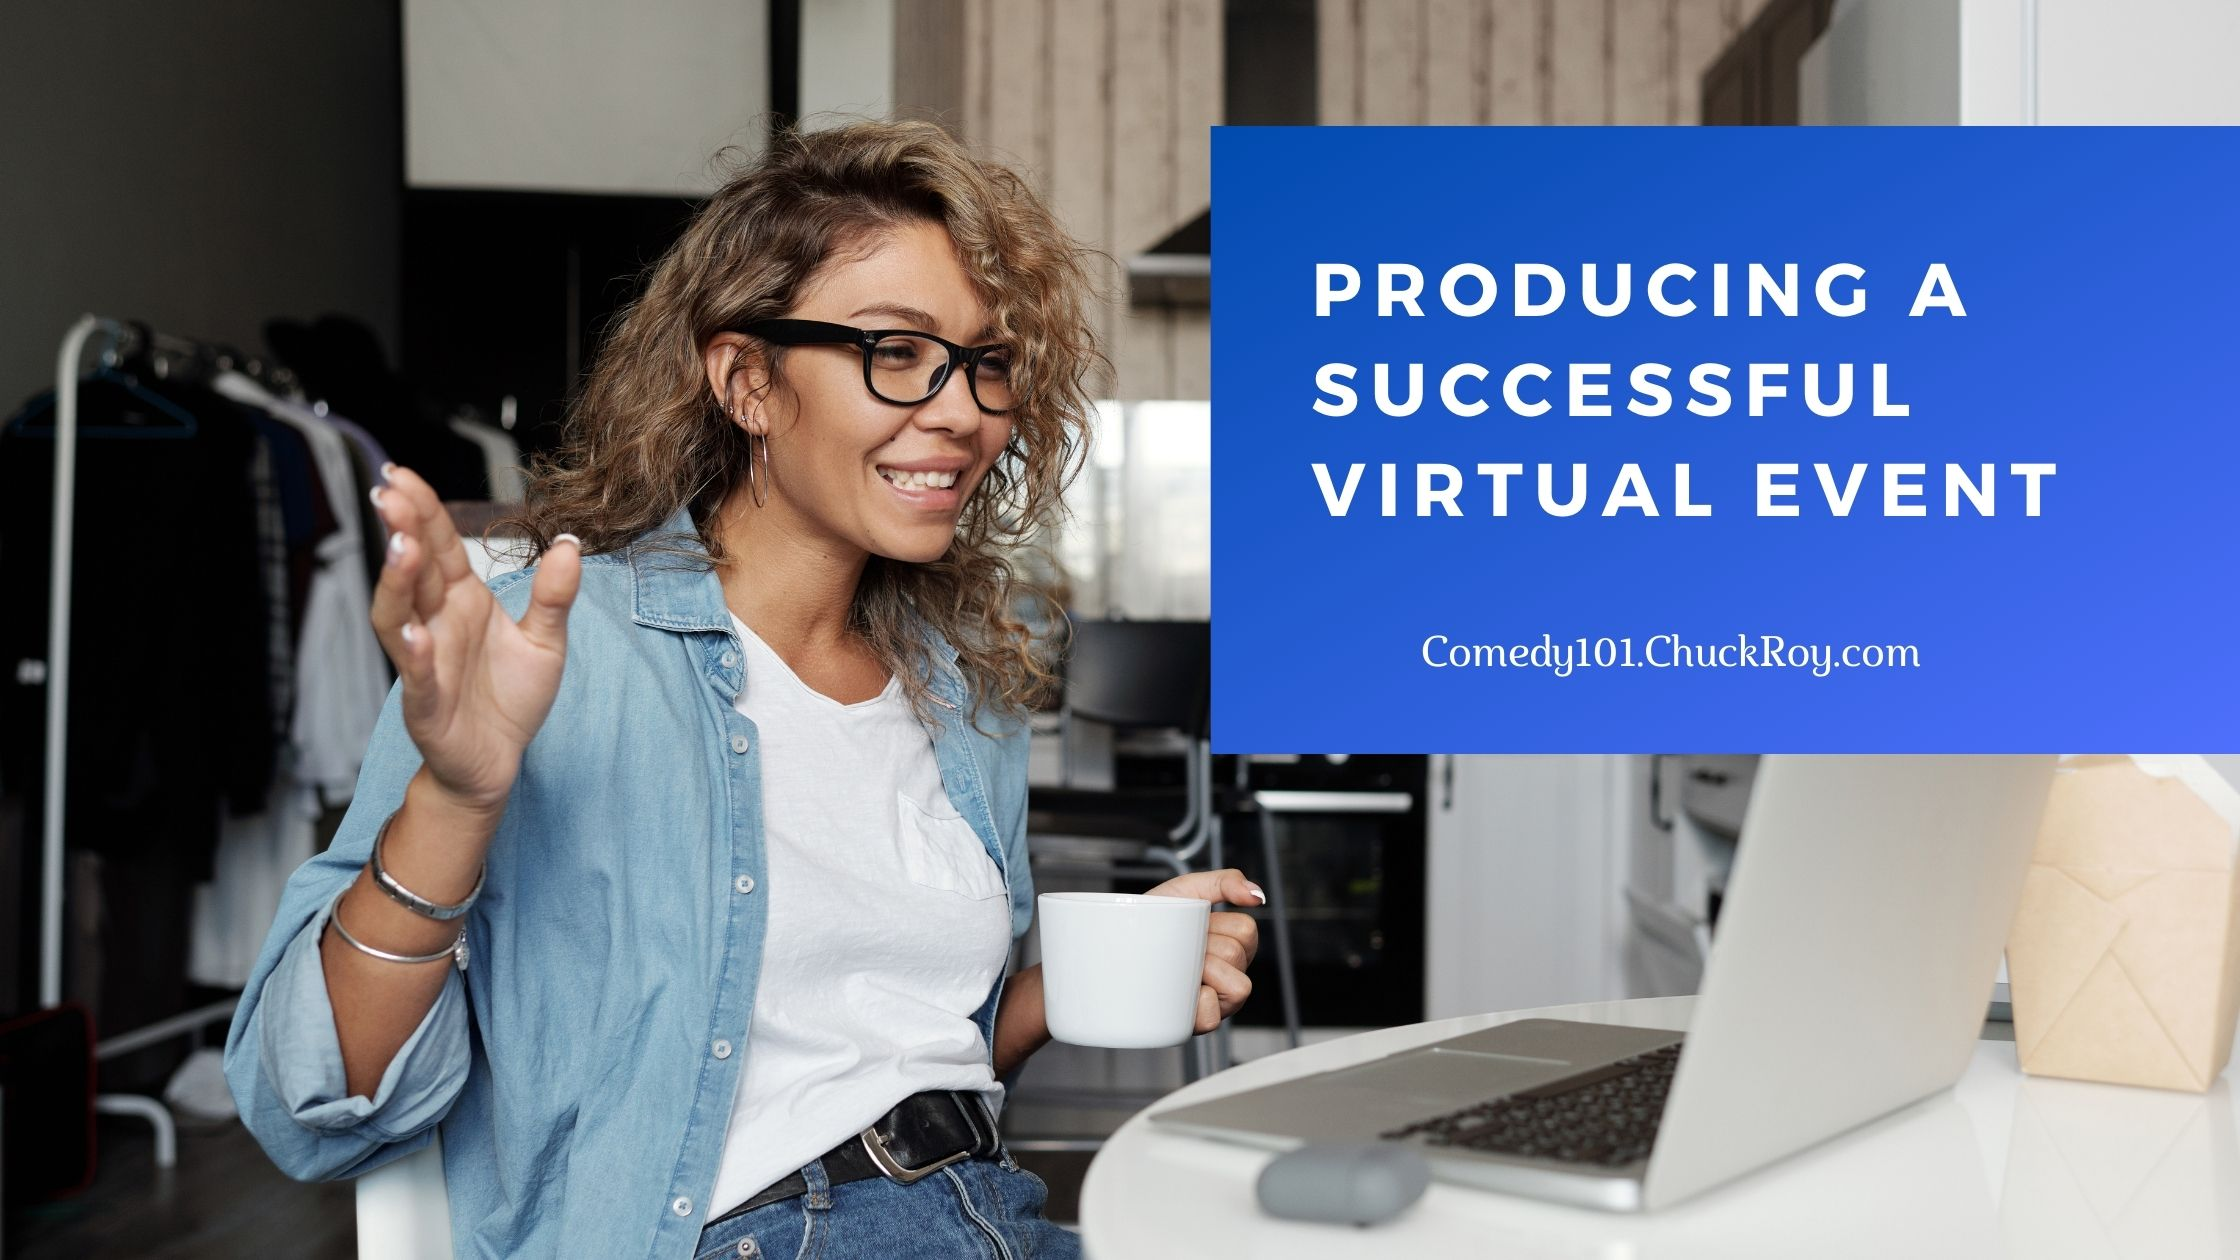 Producing a Successful Virtual Event (Part 3 of 5)